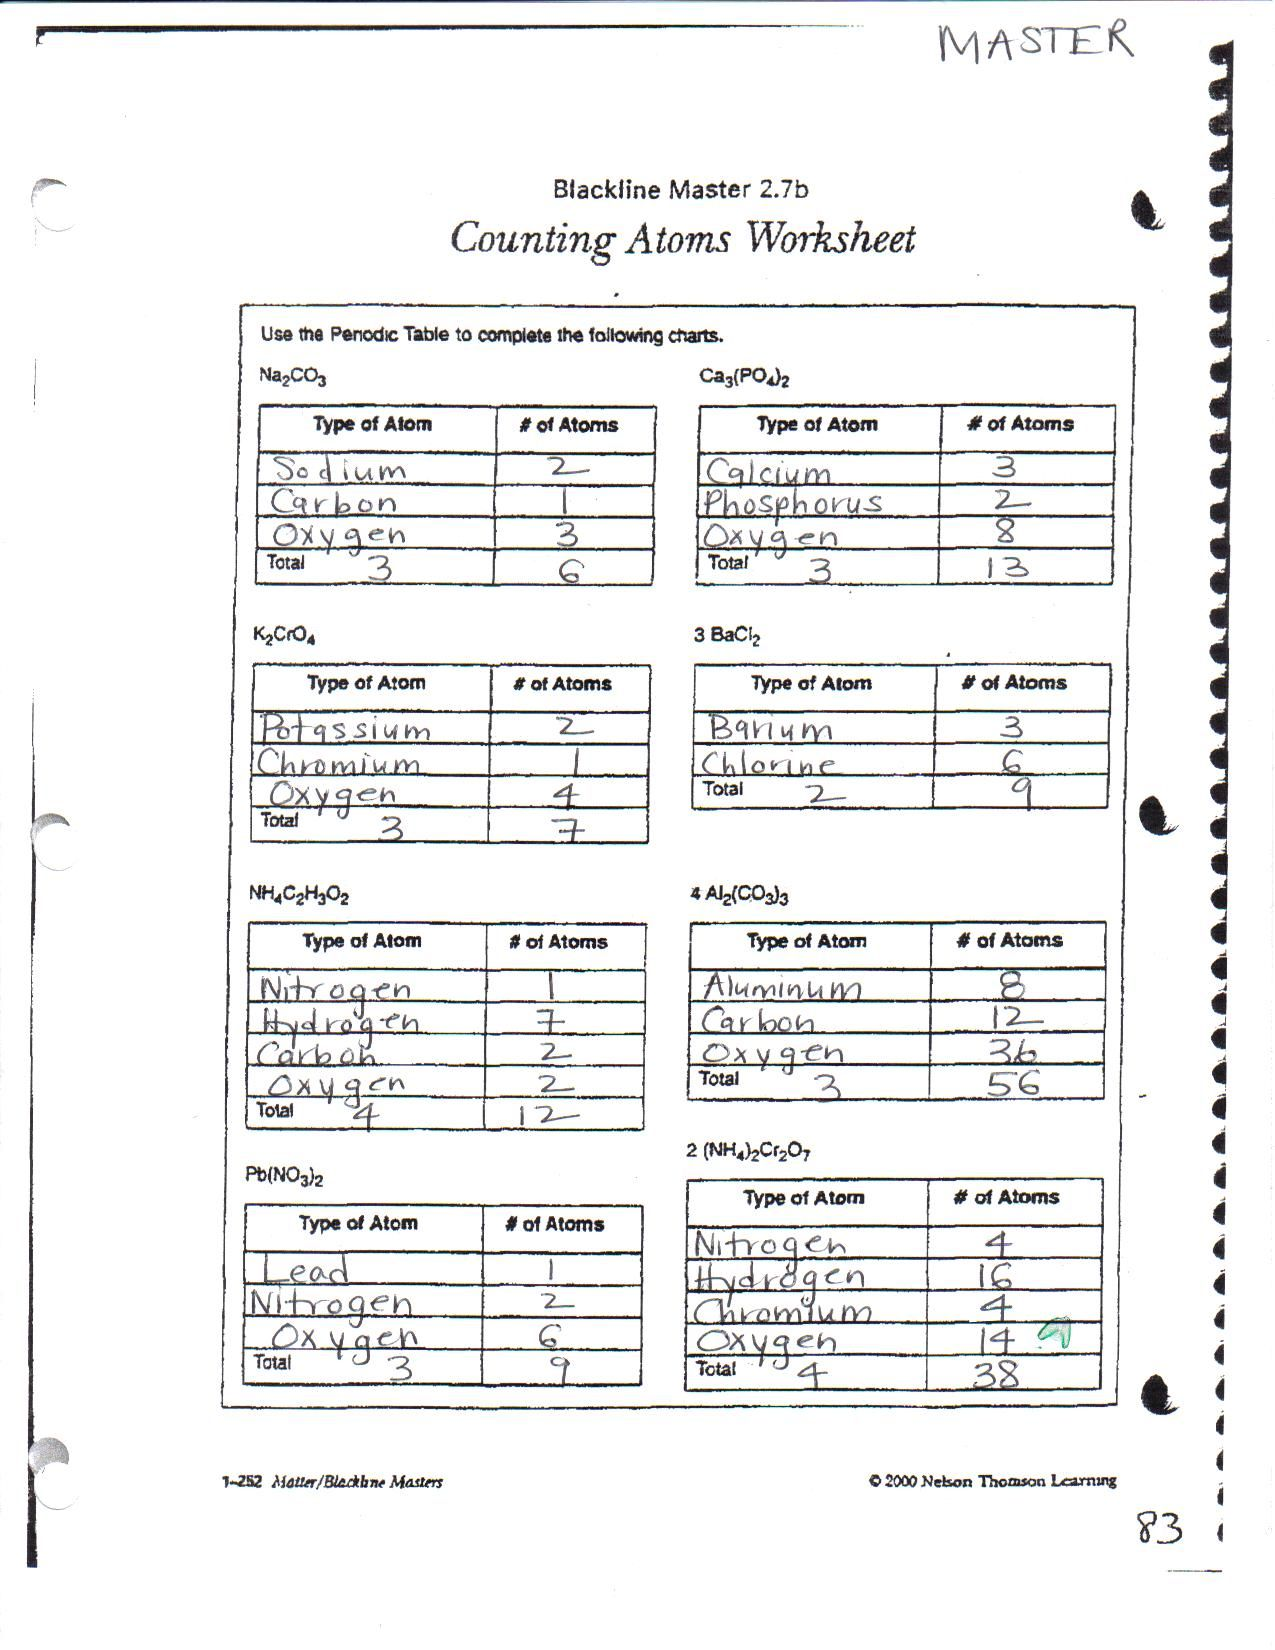 31 Awesome Counting Atoms Worksheet Design Ideas S